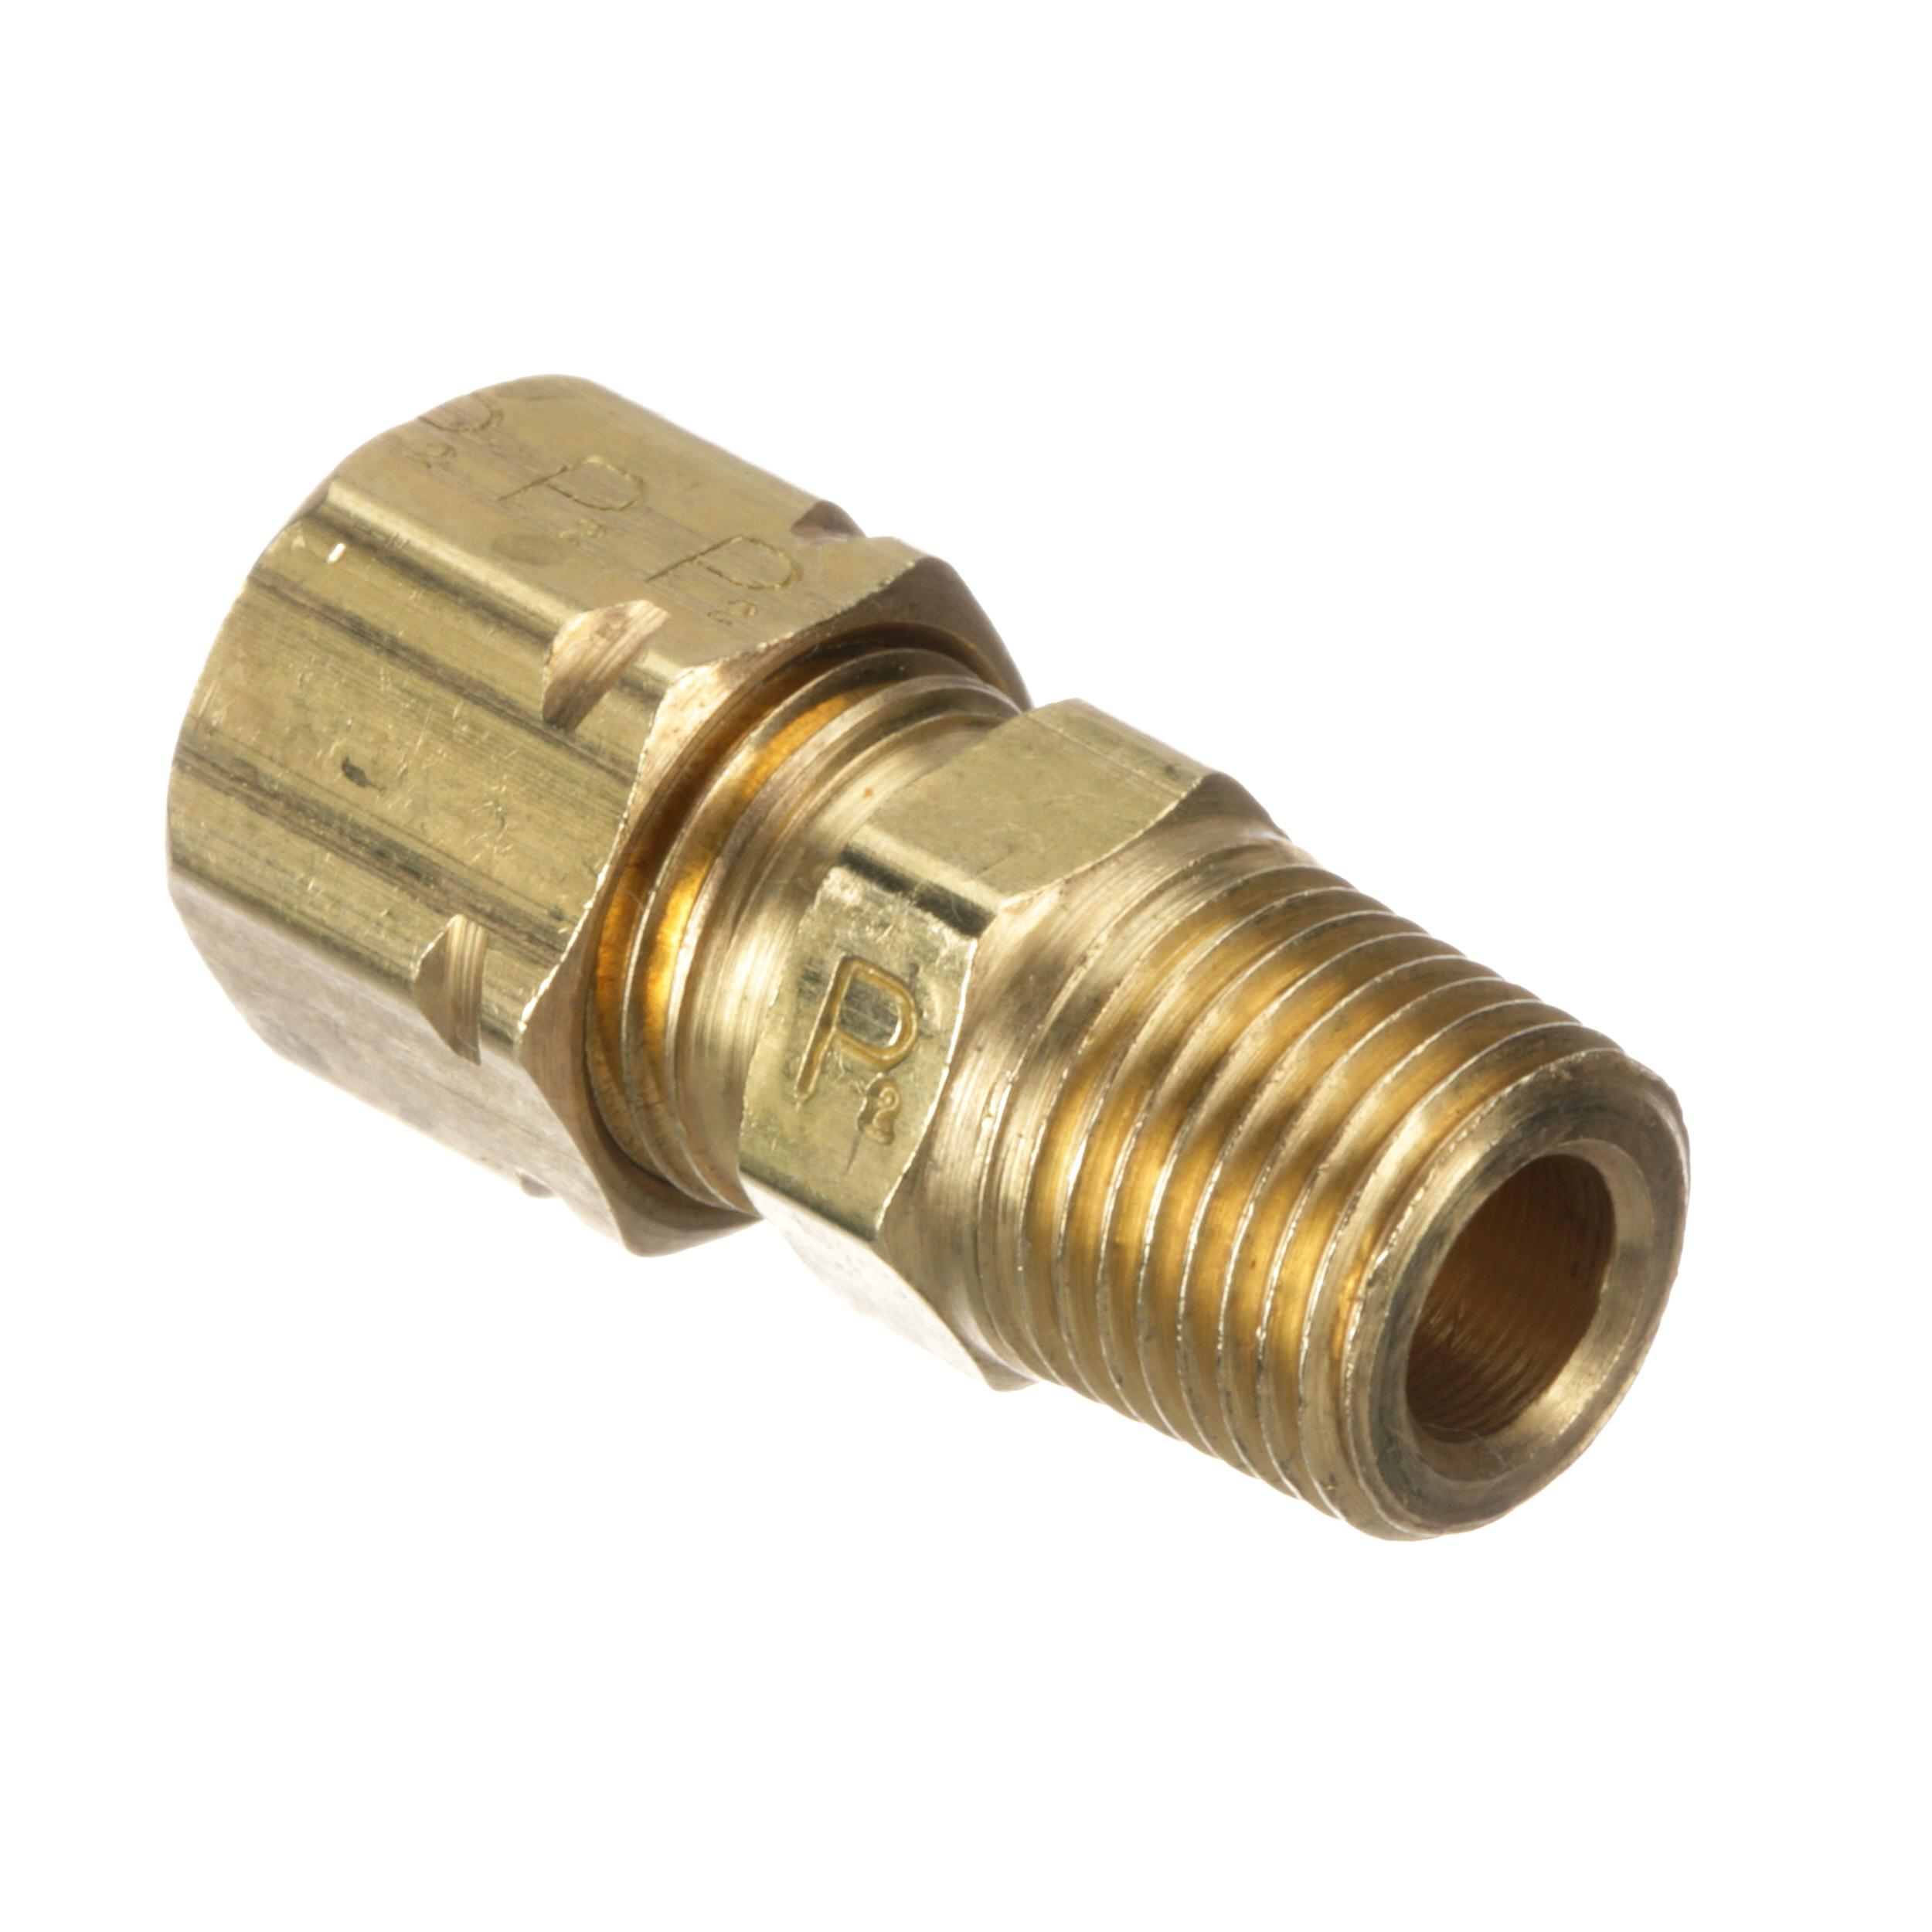 Middleby marshall compression fitting part